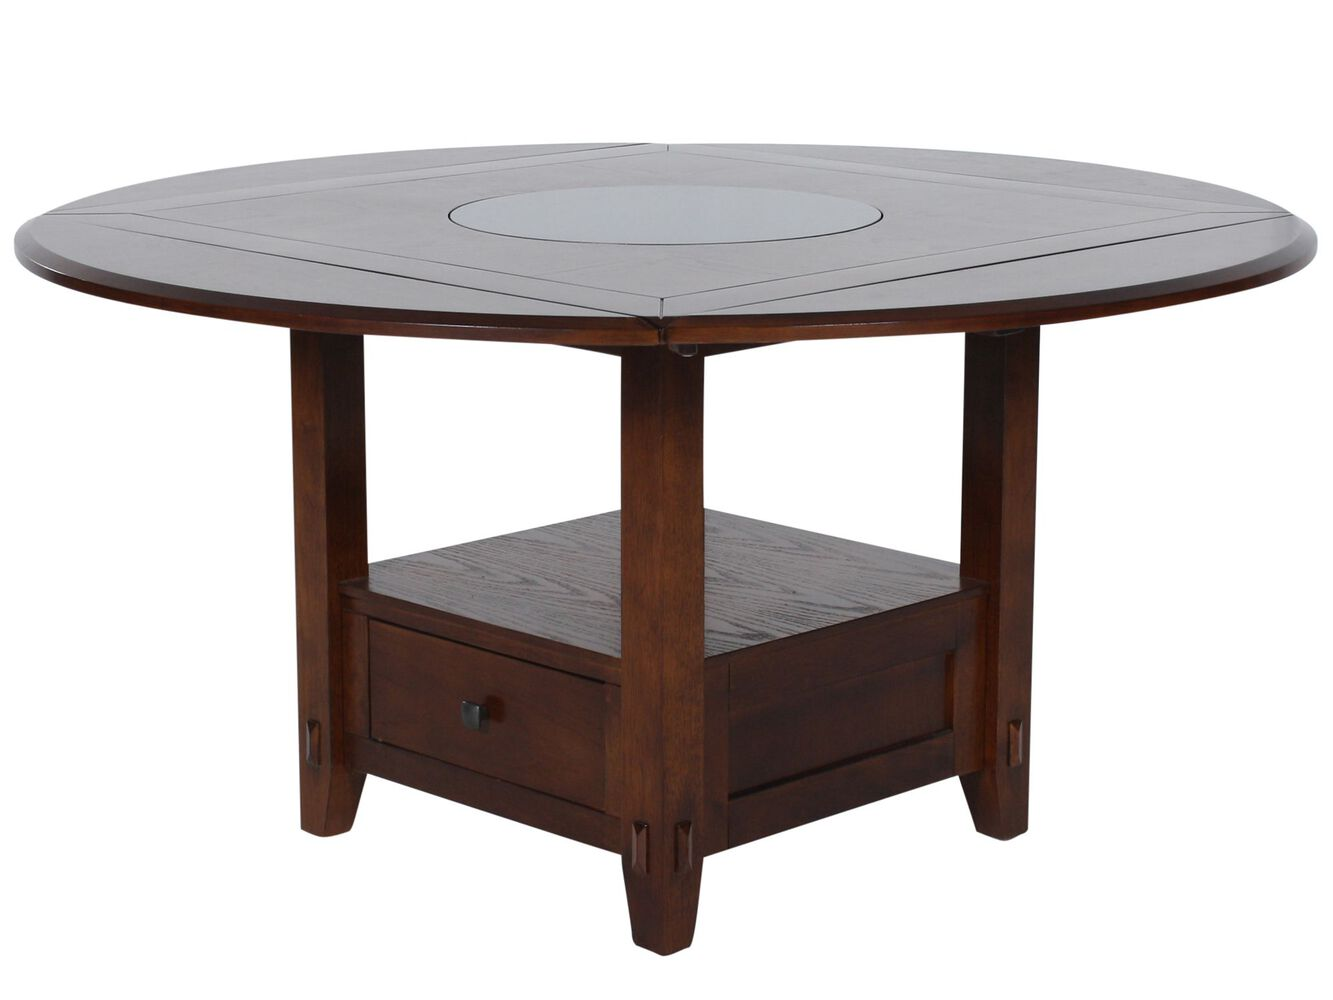 42quot 60quot Storage Pedestal Lazy Susan Traditional Dining Table In Medium Oak